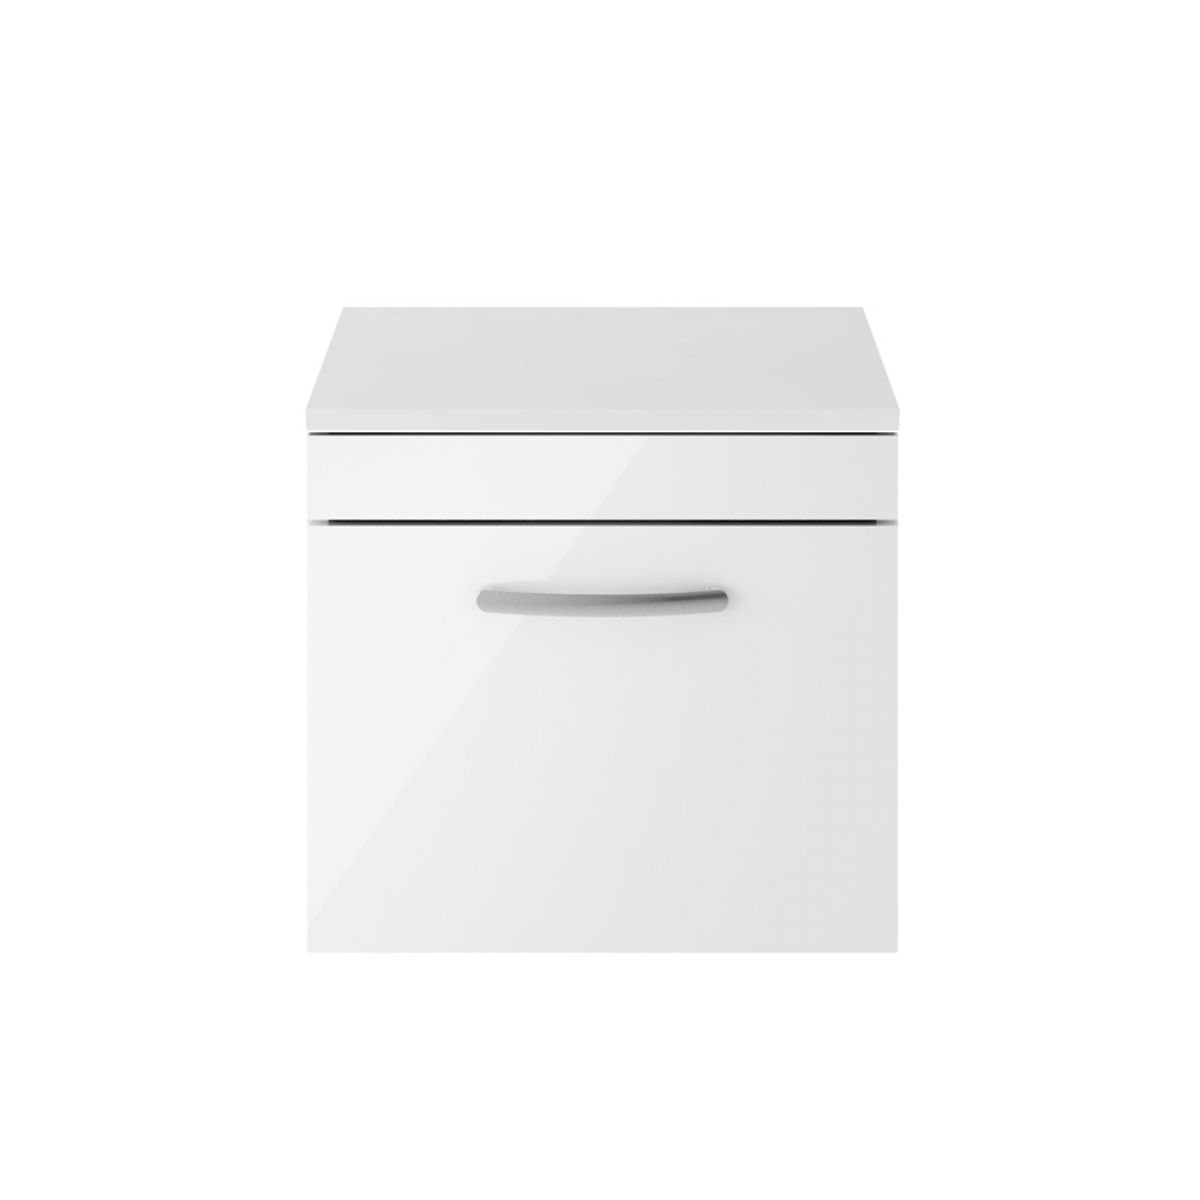 Premier Athena Gloss White 1 Drawer Wall Hung Vanity Unit 500mm with Worktop